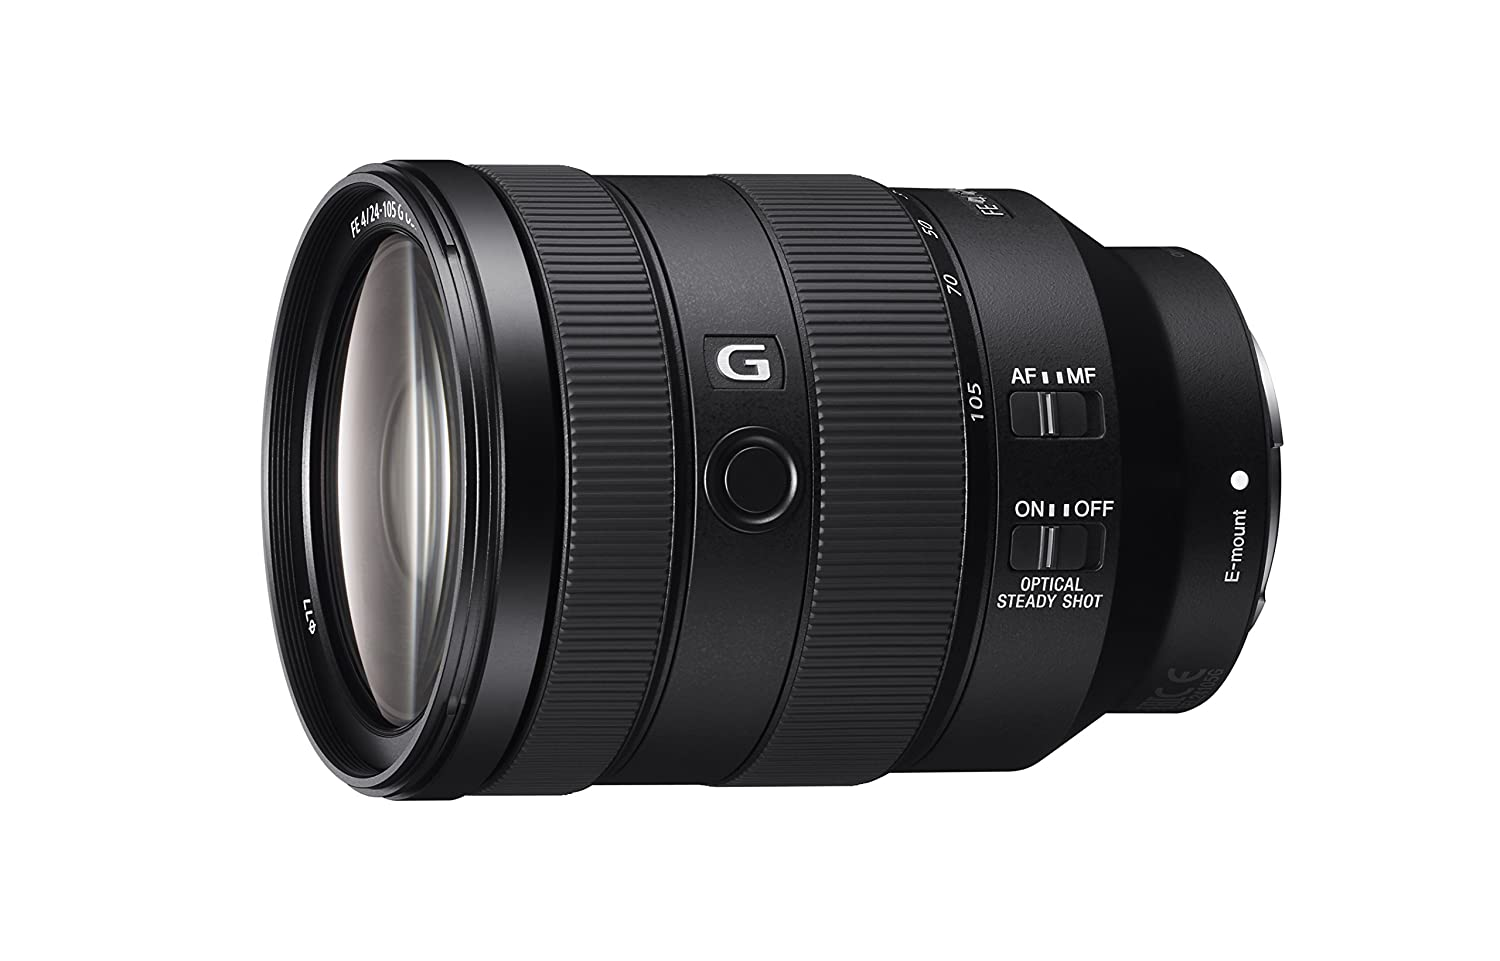 Sony 24-105mm f/4.0-22 Standard-Zoom Fixed Zoom Camera Lens, Black Sony Electronics Inc SEL24105G